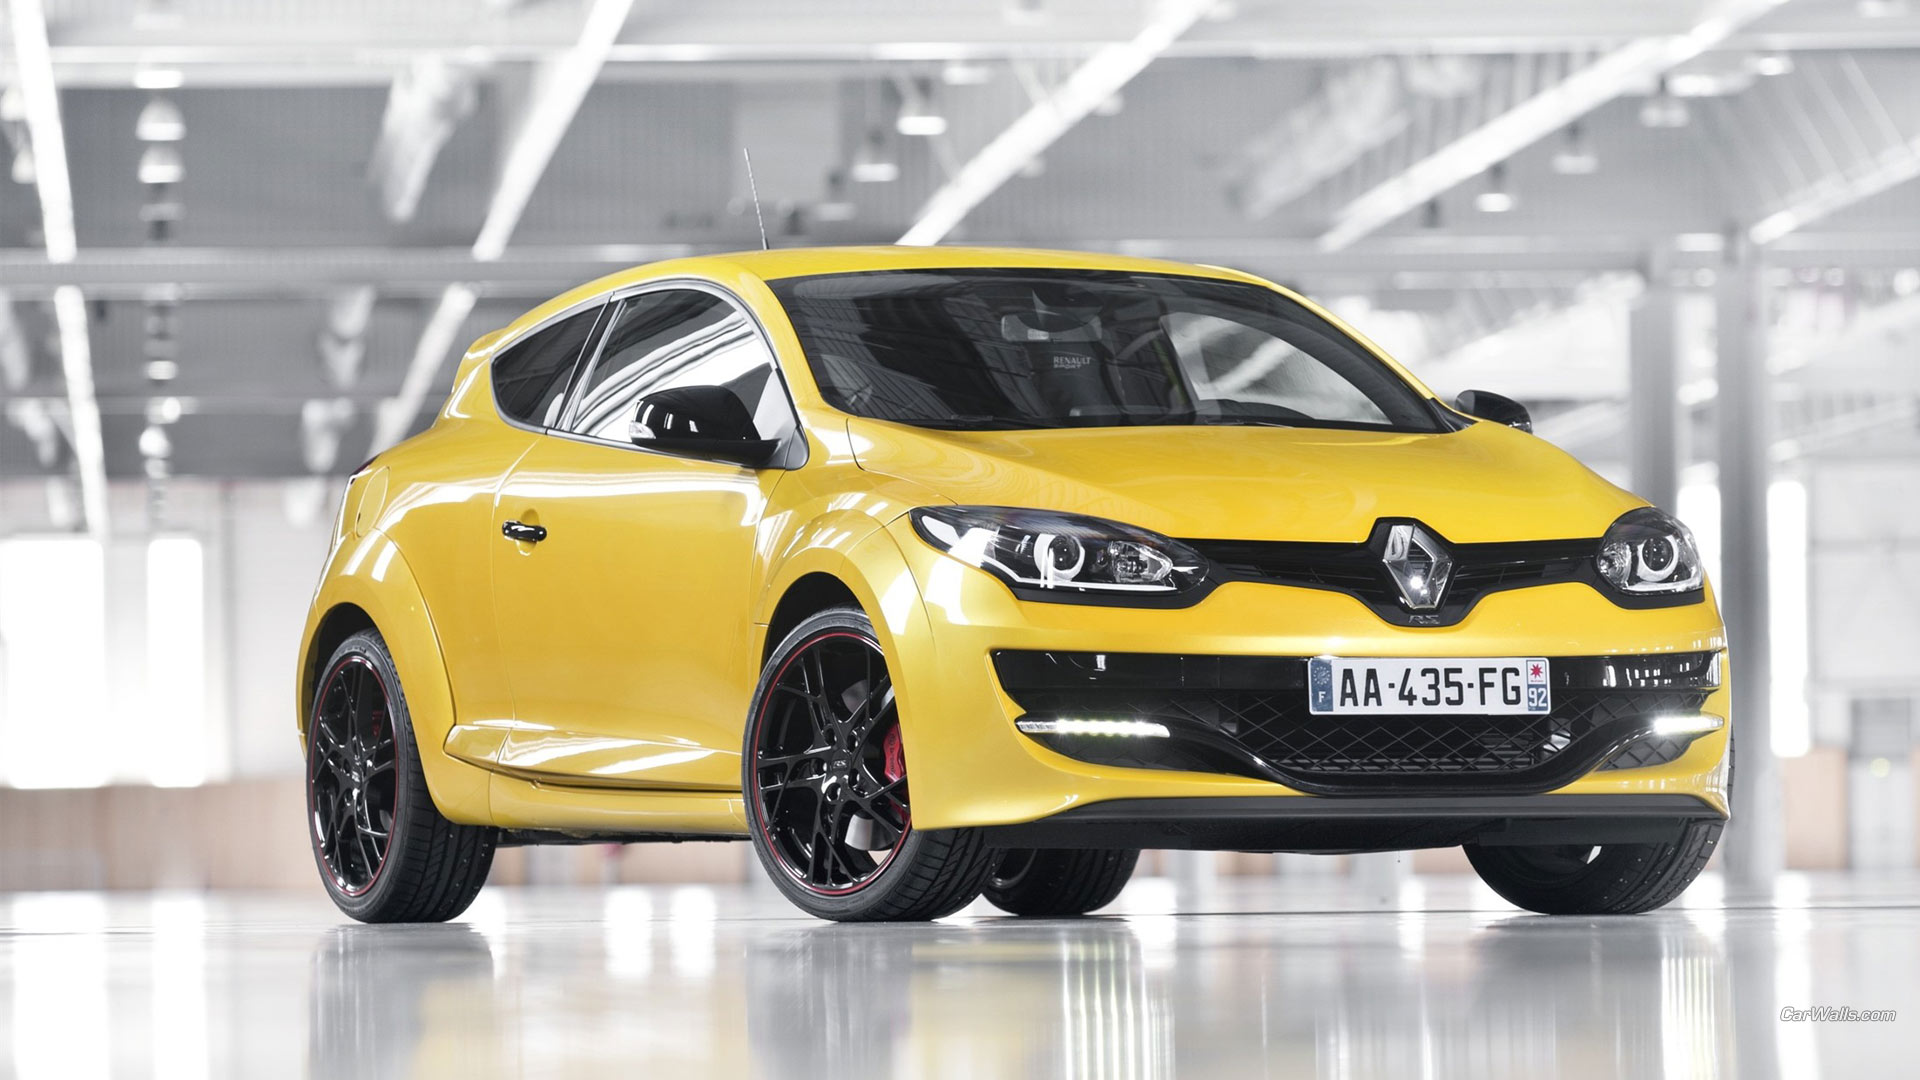 7 2014 renault m gane rs hd wallpapers backgrounds wallpaper abyss. Black Bedroom Furniture Sets. Home Design Ideas